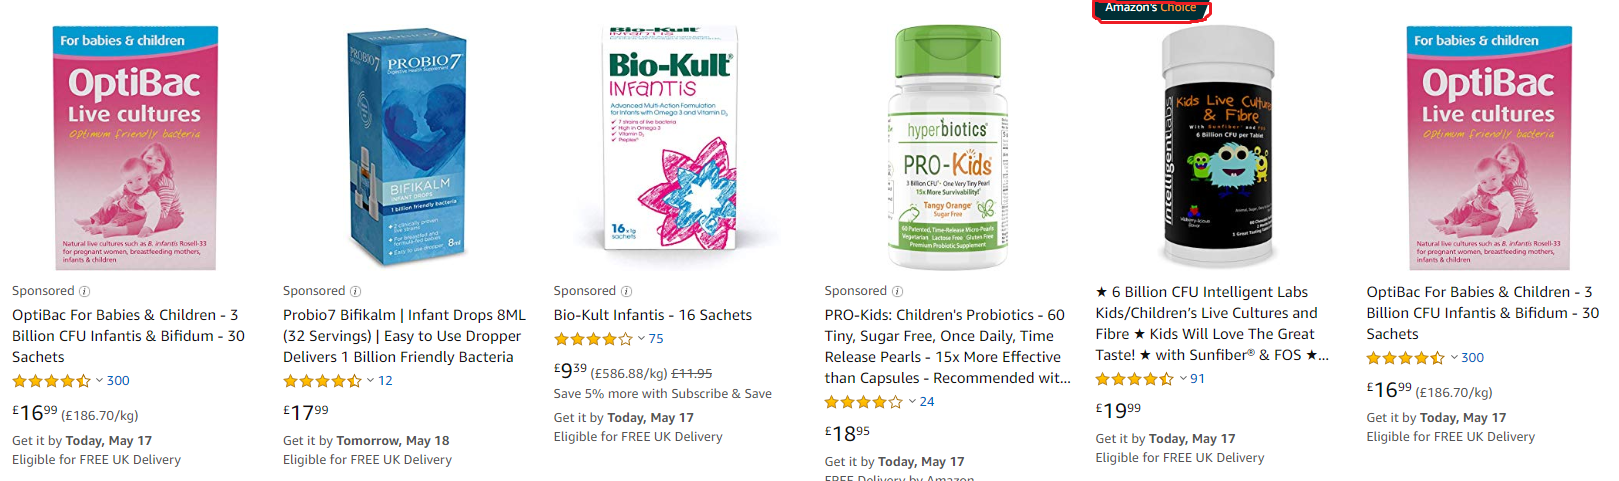 amazon search results probiotics for children